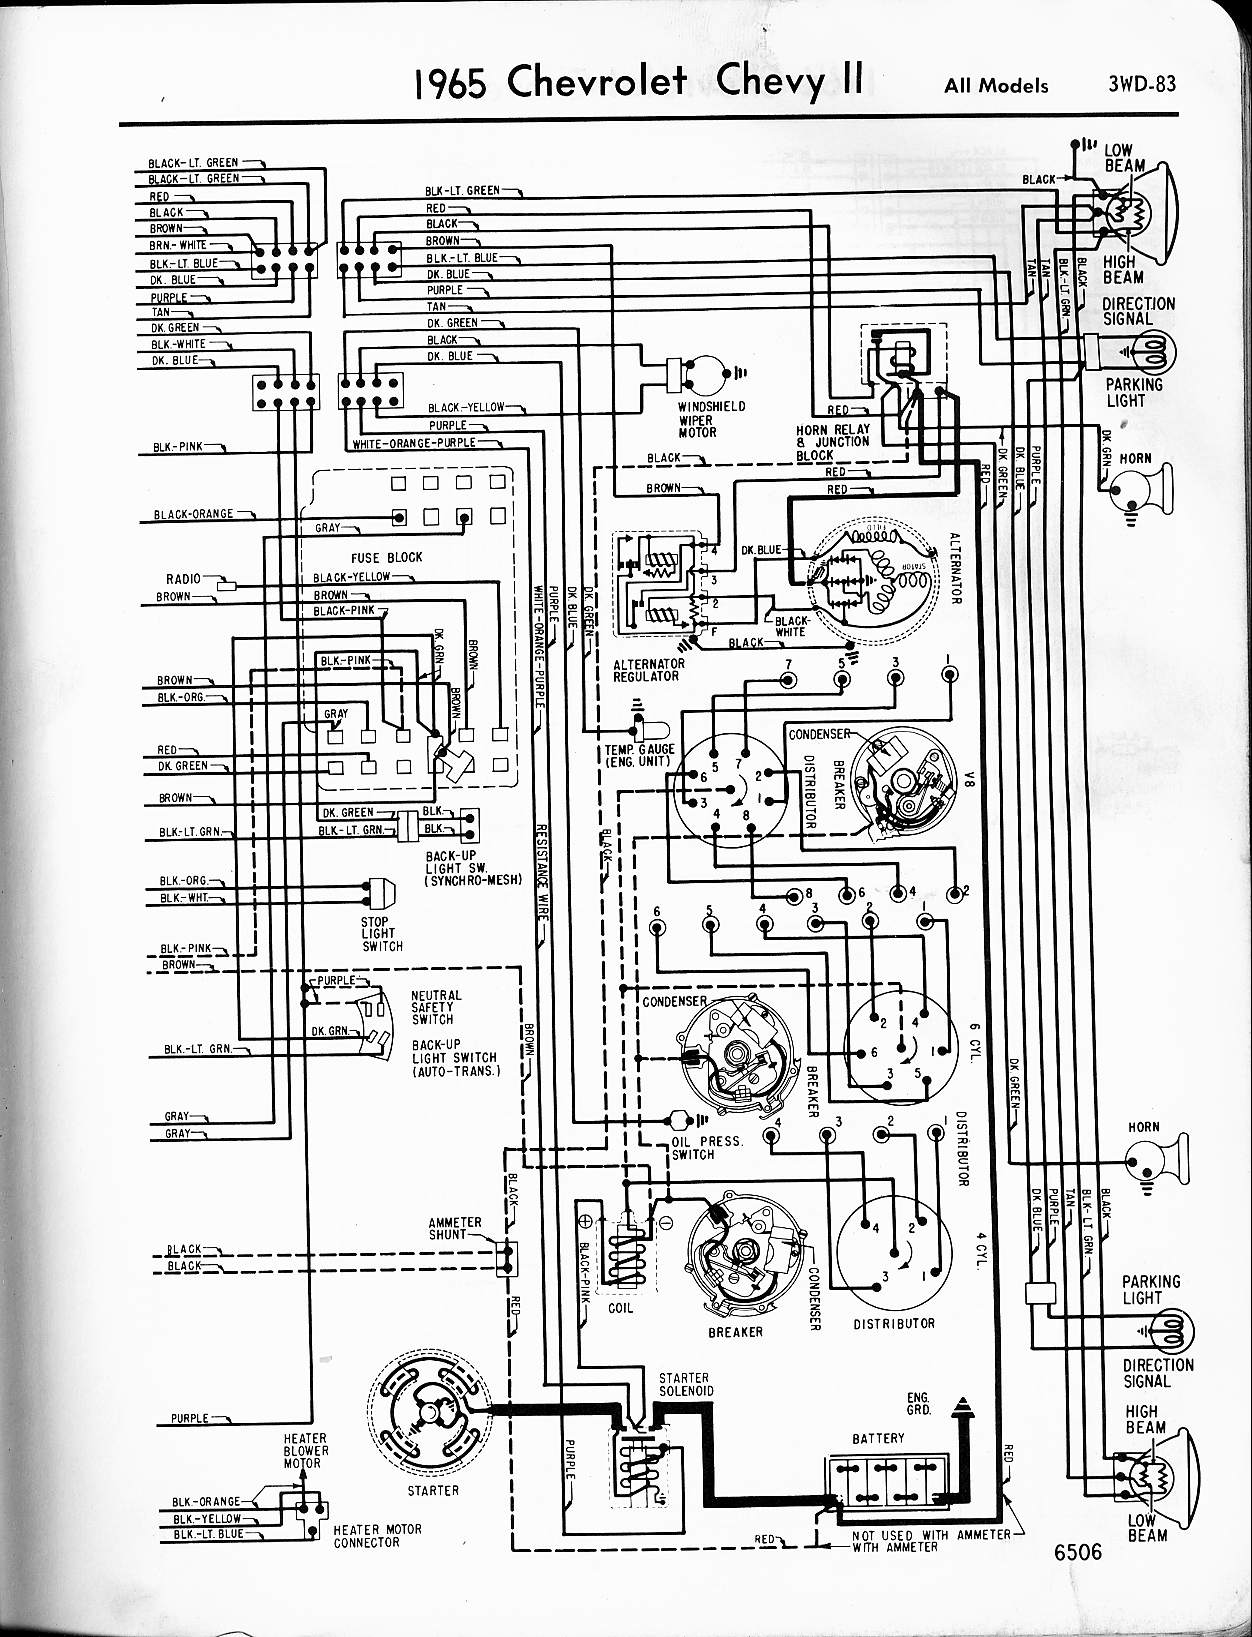 1964 ford falcon wiring diagram instrument schematics wiring rh theanecdote co Diode Rectifier Wiring Diagram For KBPC5010 Bridge Rectifier Wiring-Diagram